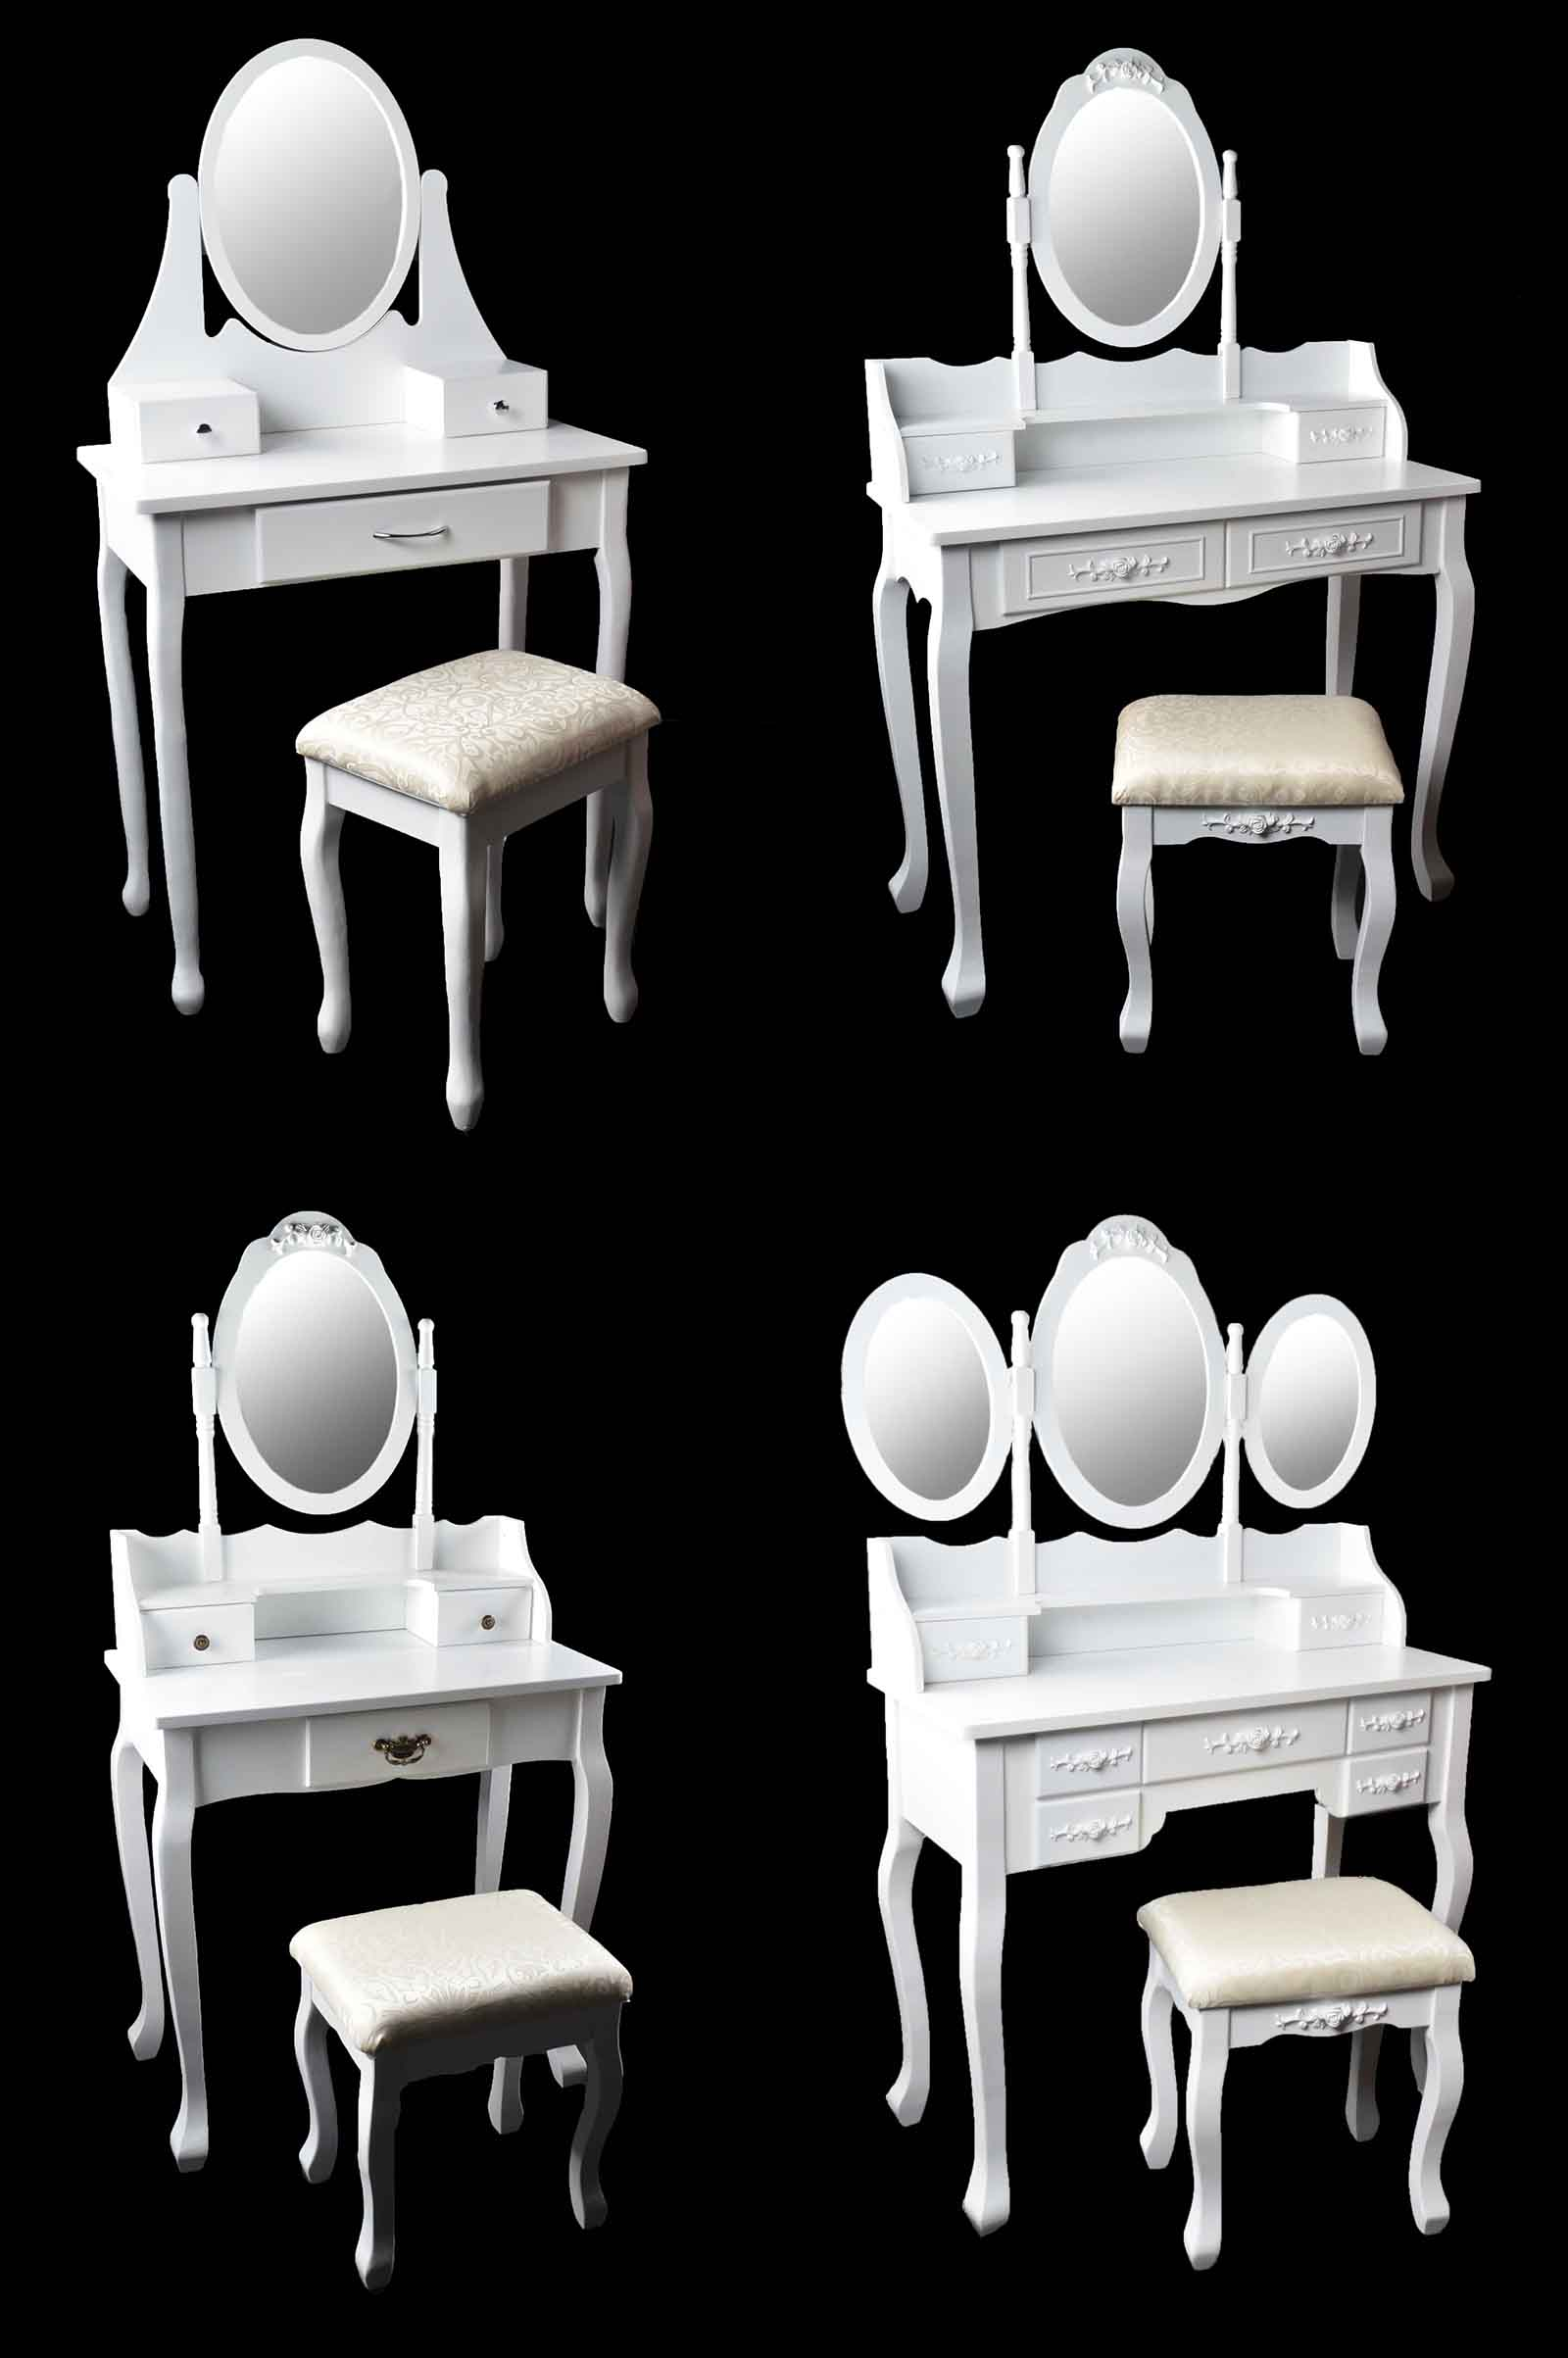 schminktisch frisiertisch kosmetiktisch mit spiegel hocker vintage shabby chic ebay. Black Bedroom Furniture Sets. Home Design Ideas